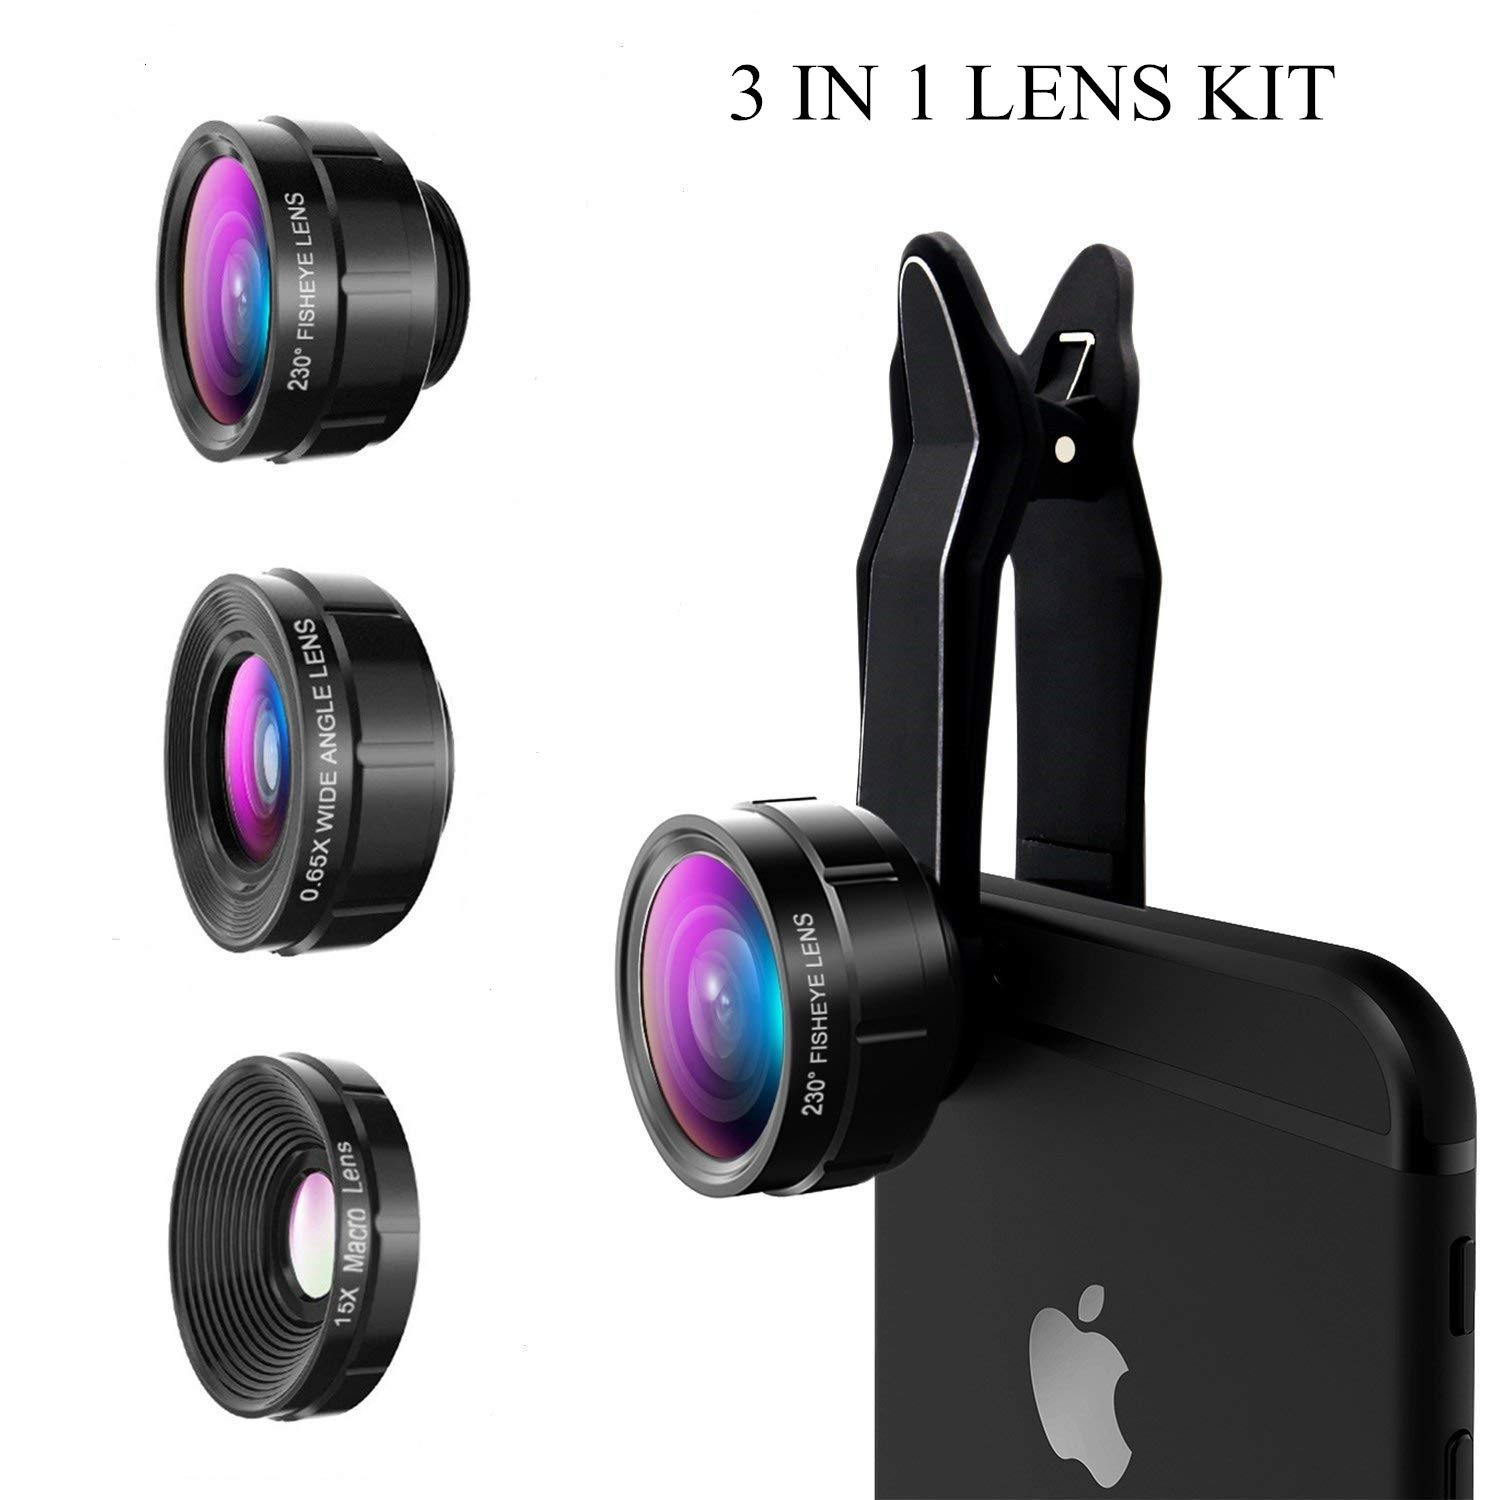 Universal Professional HD Camera Lens, icyber cellphone camera lens with 230°Fish Eye Lens Wide Angle Lens Macro Lens 3 in 1 Camera Lens Kits for iPhone 7 6 6s plus 5 5s 5c 4s ipad Samsung S8/S7/S6 by icyber